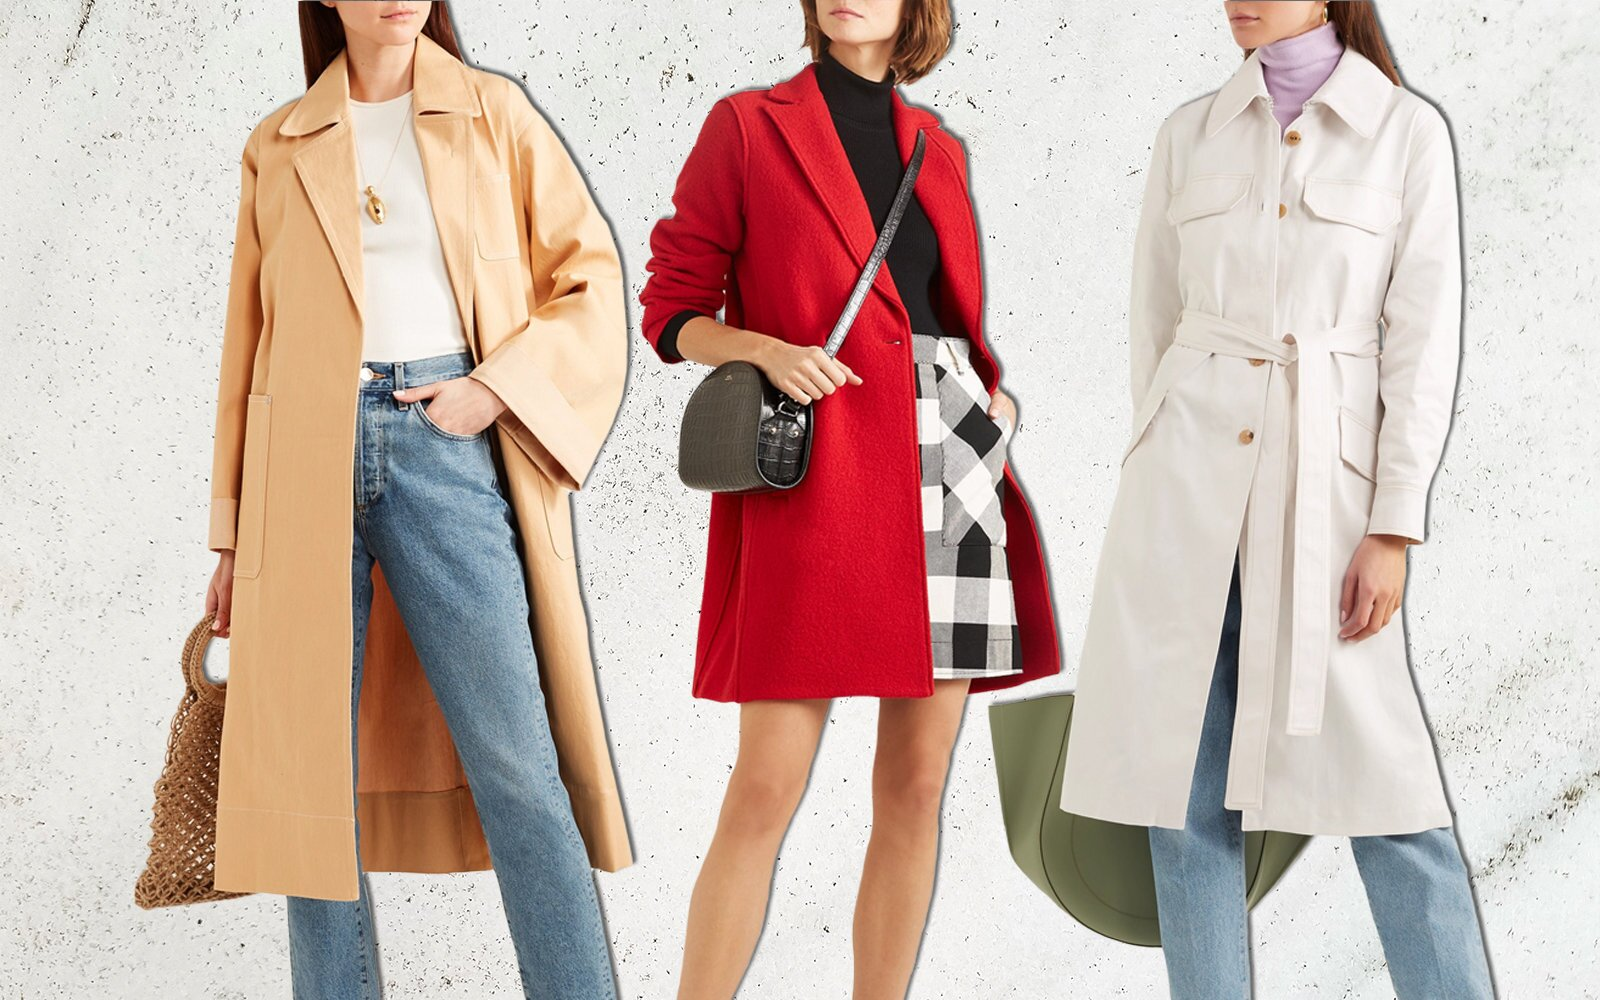 28a452297286d 17 Stylish Winter Coats to Buy on Sale Right Now | Travel + Leisure